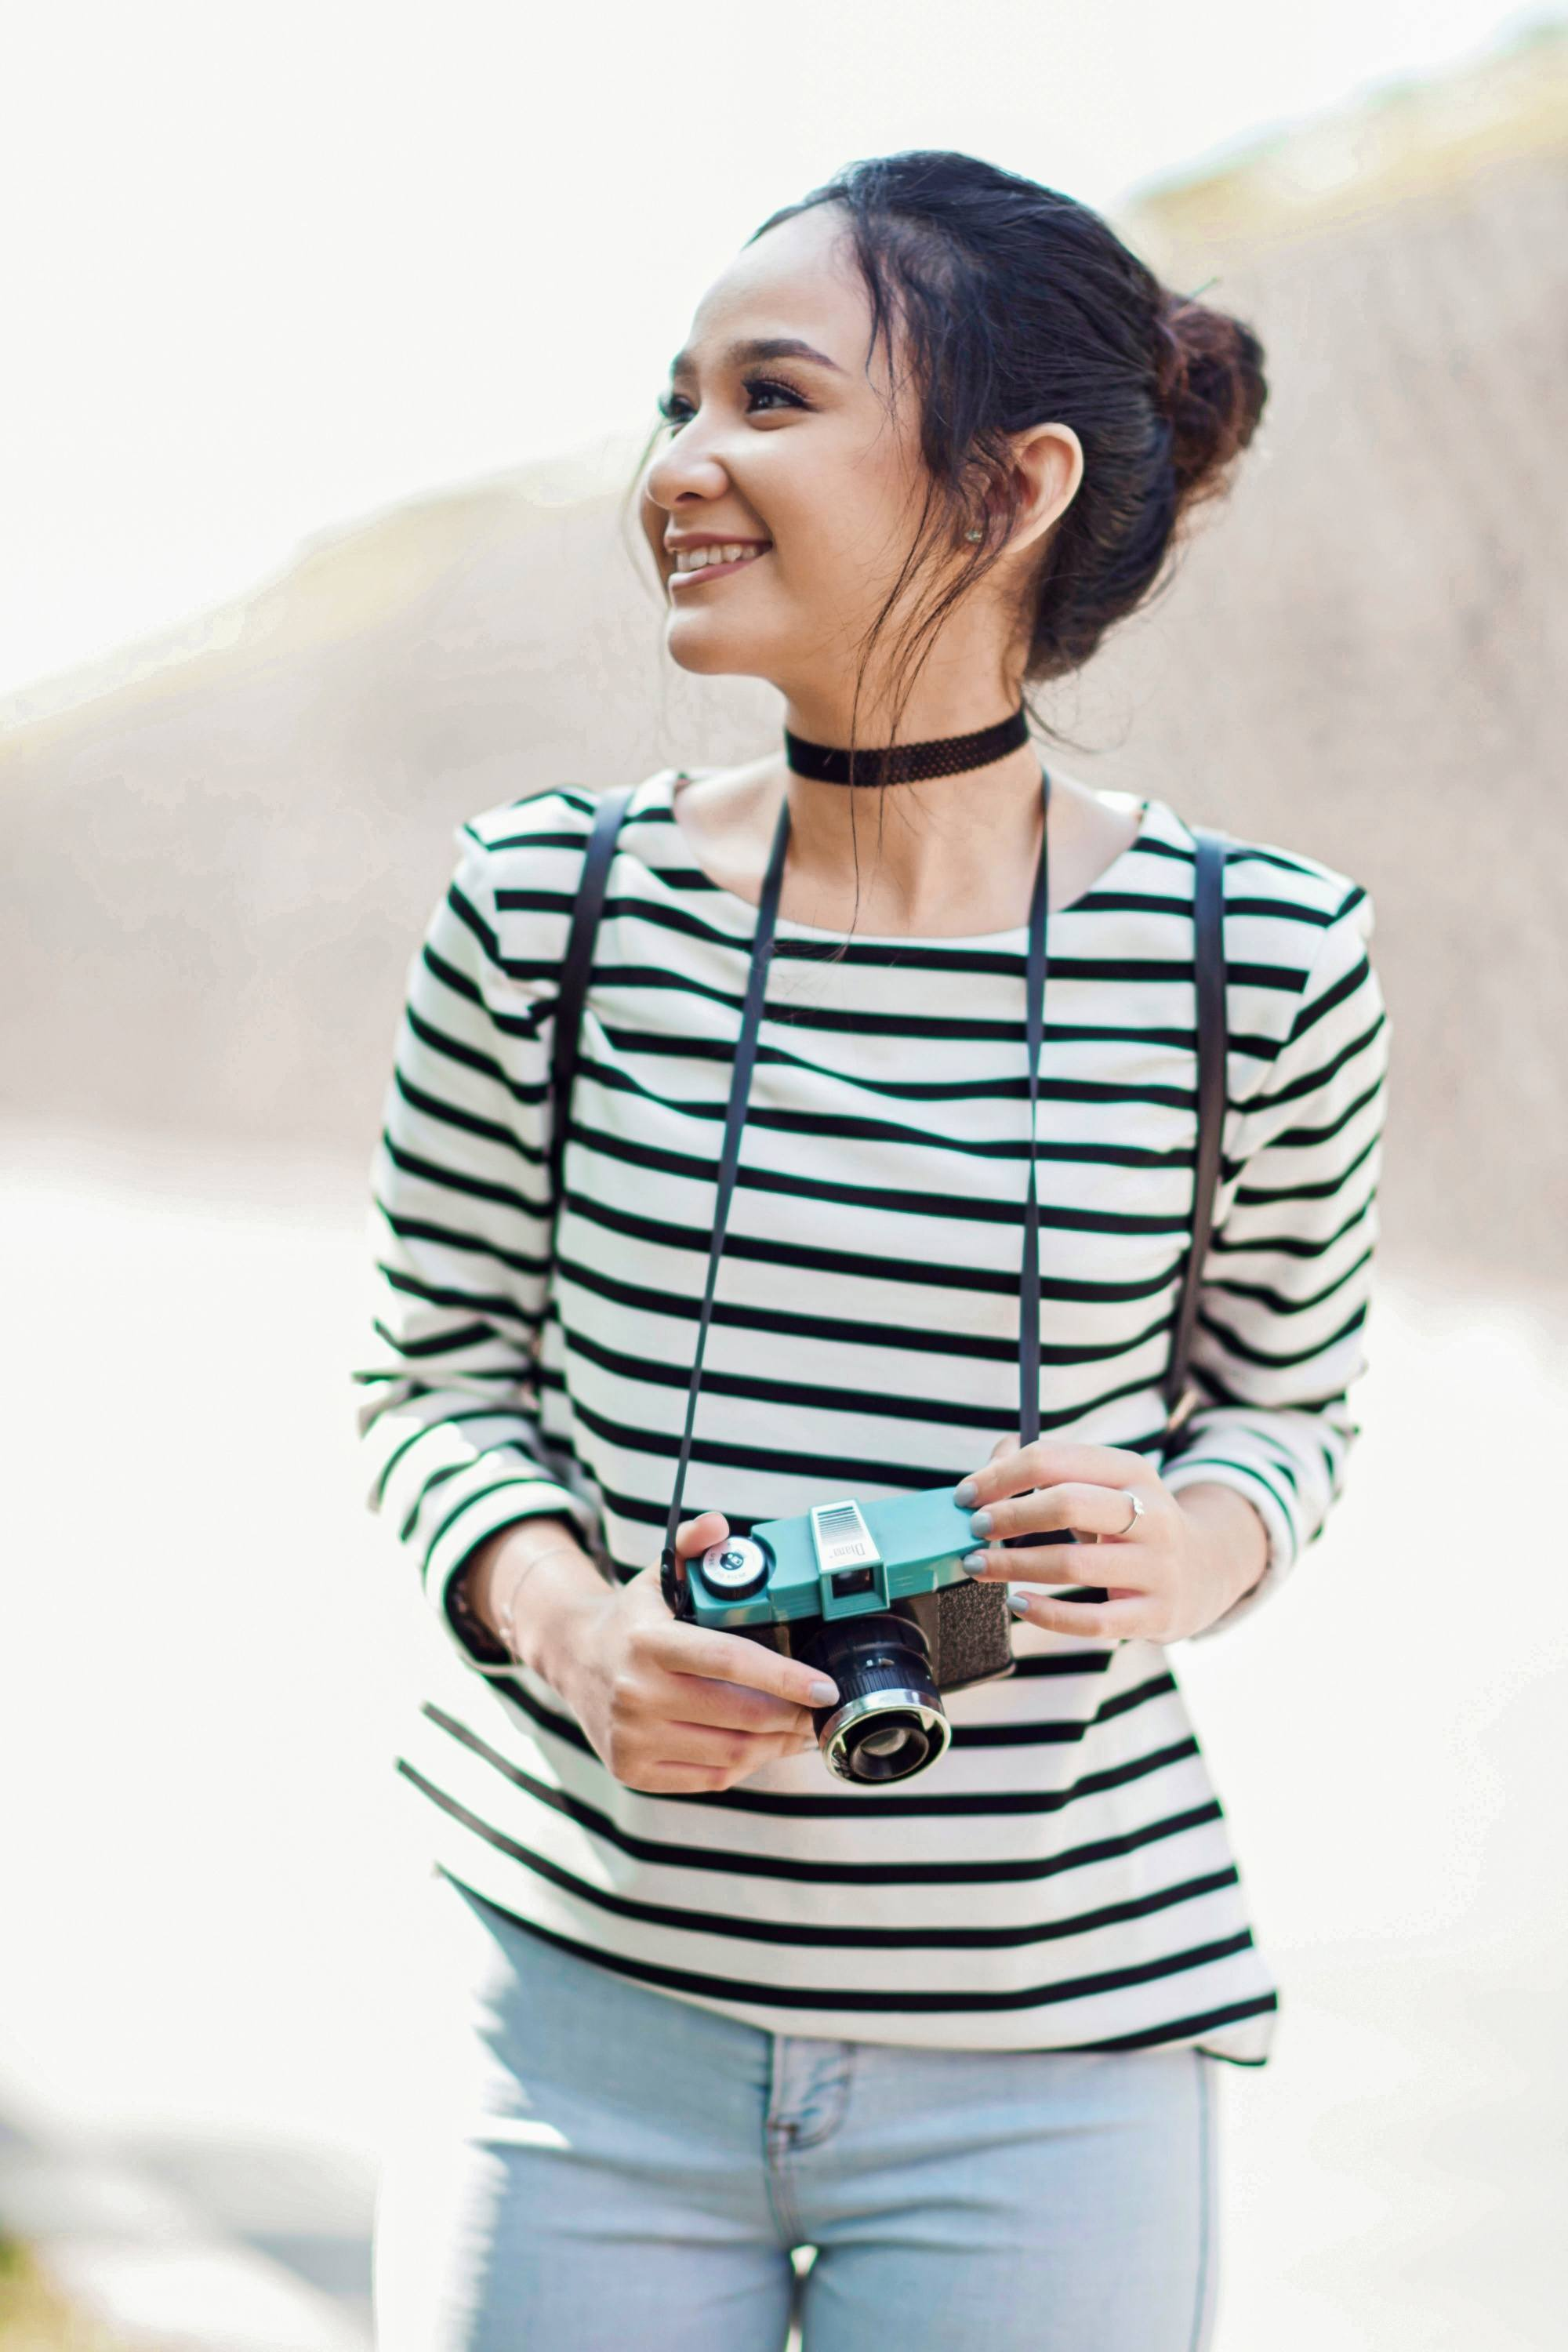 International Women's Day: Asian woman with long black hair in a messy bun wearing a striped shirt and holding a camera